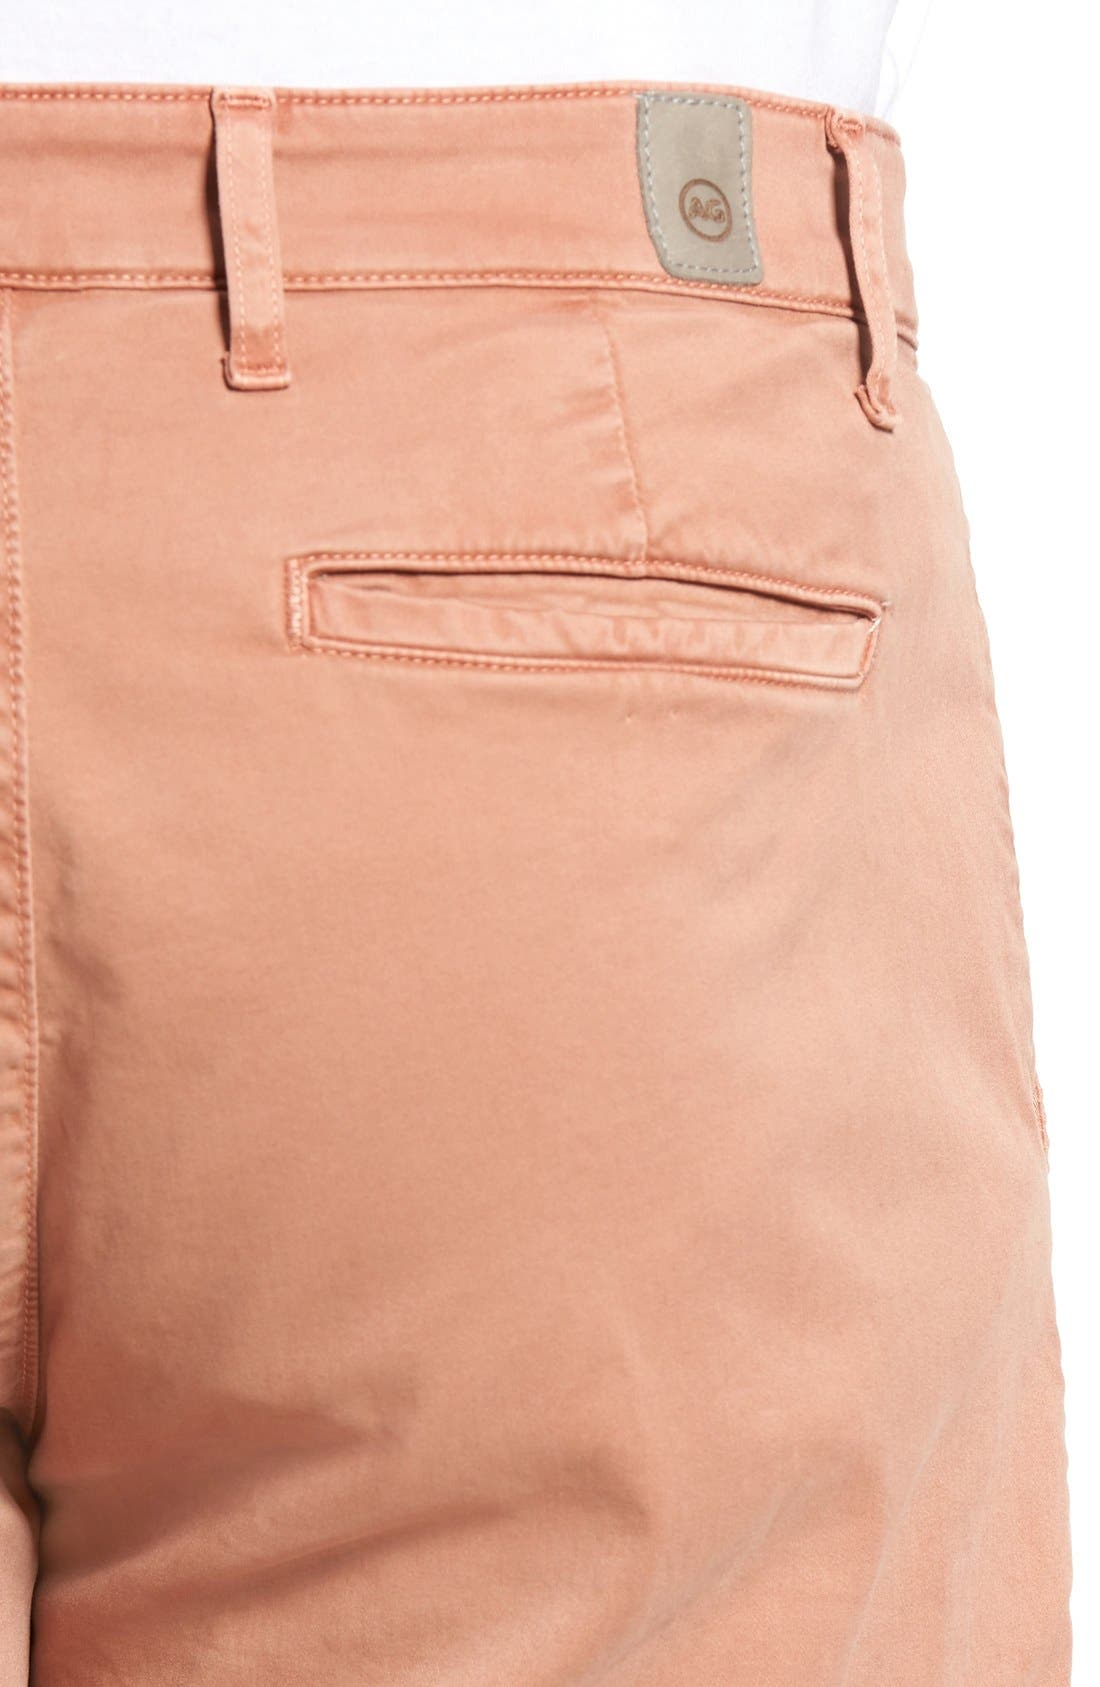 'Griffin' Chino Shorts,                             Alternate thumbnail 4, color,                             Sulfur Canyon